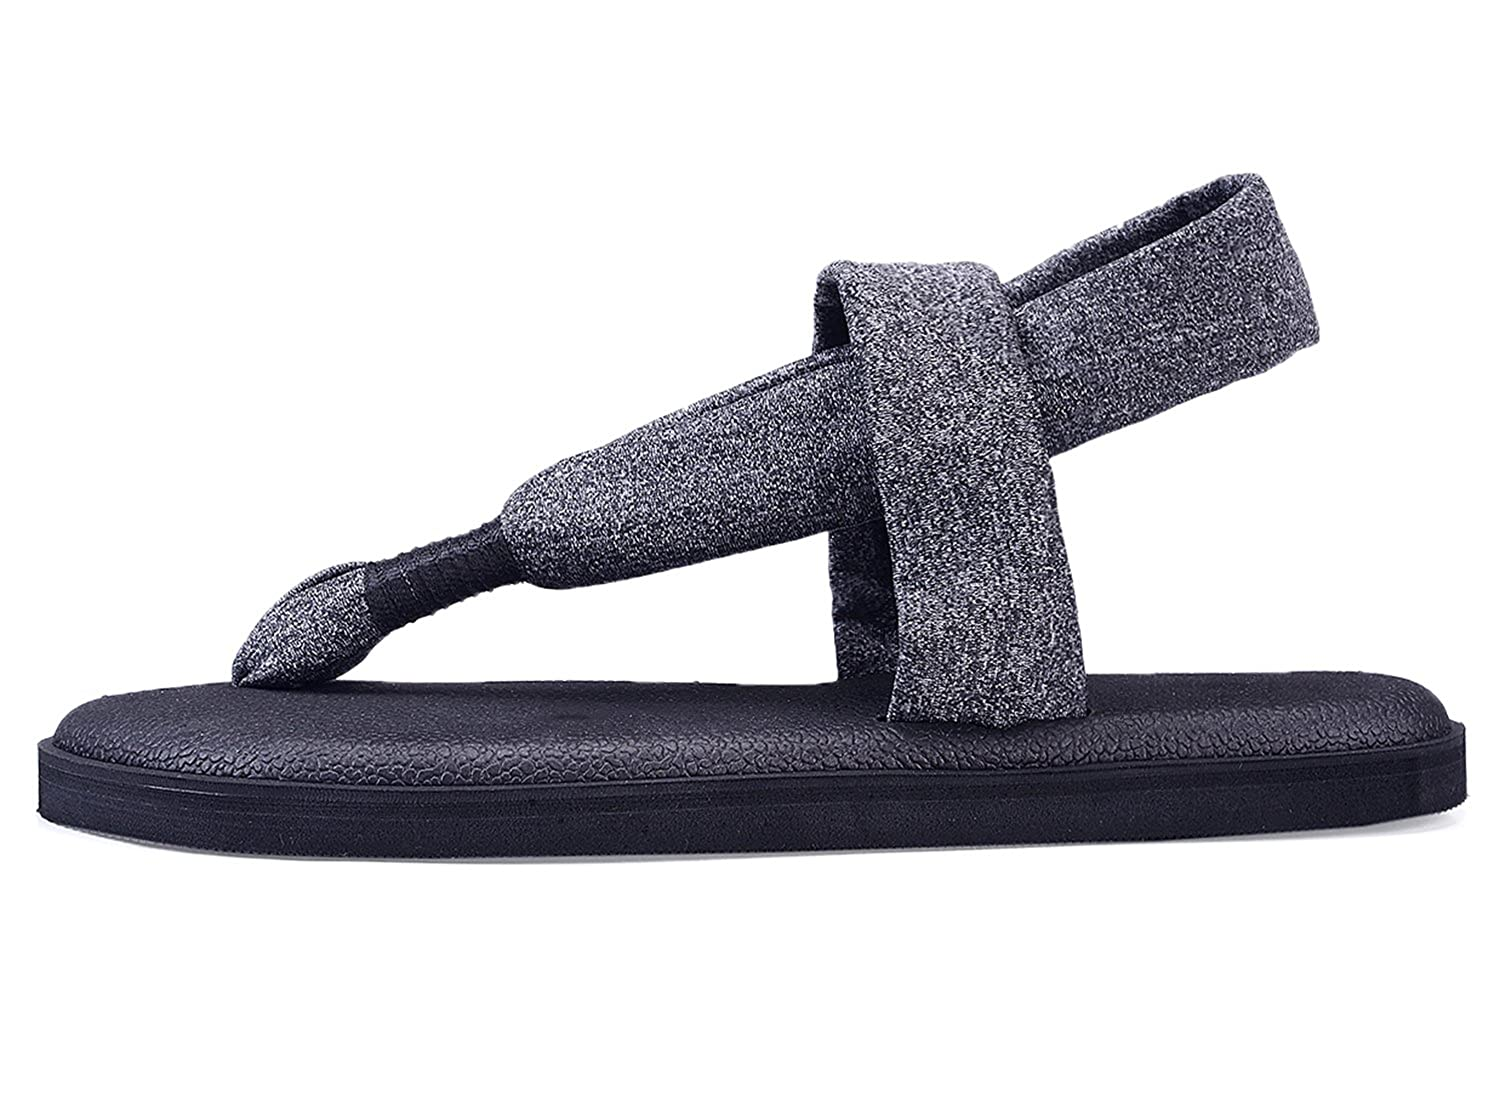 fa981e912c86 Santiro Black Flat Women Sandals Shoes Yoga Mat Sole Sling Thong Sandals  Lightweight Slingback Flip-Flops SSD003B7-42  Amazon.co.uk  Shoes   Bags